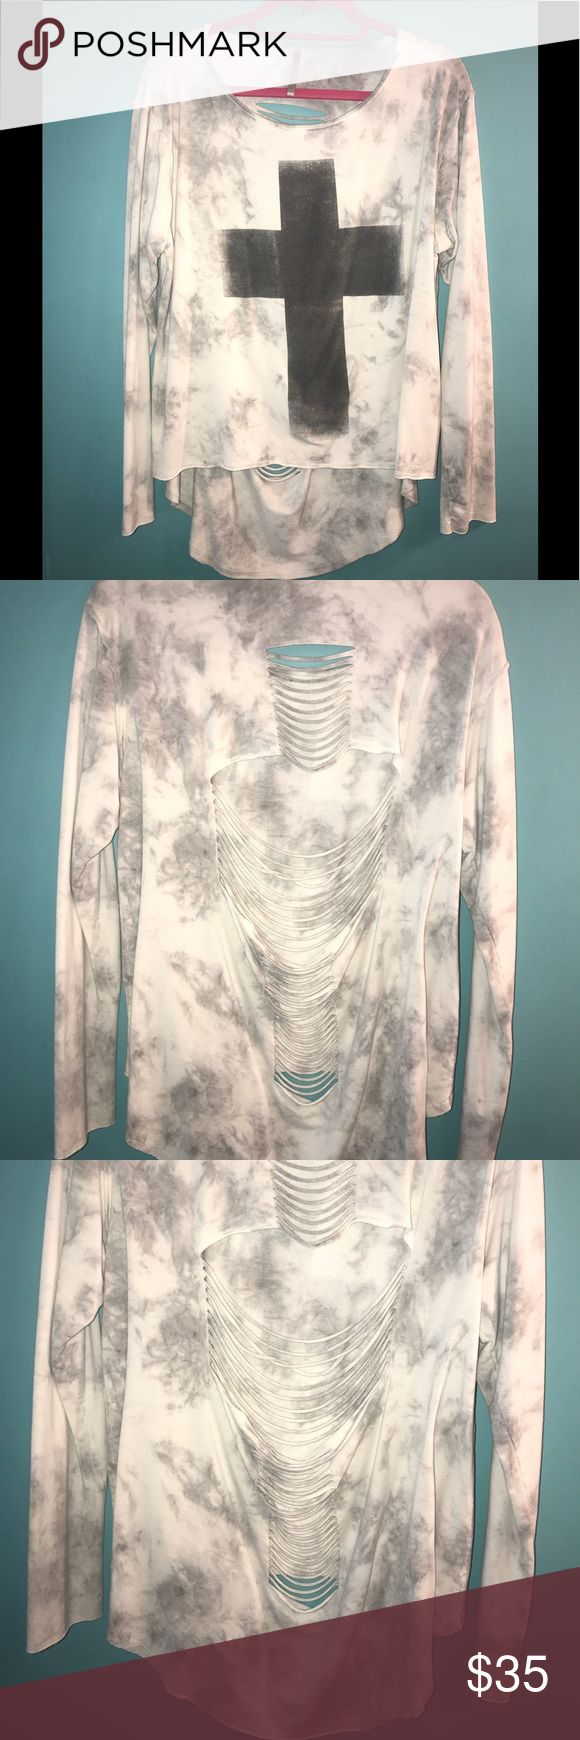 EUC MONO B Anthropologie Gray Cross Large COMFY EUC MONO B Anthropologie Long Sleeve Soft Gray Cross SZ Large SOFT FAST SHIP! Smoke free pet free home! Arm pit to armpit measures across at 21 inches and length is 30 inches. K/ c1 Mono B Sweaters Crew & Scoop Necks